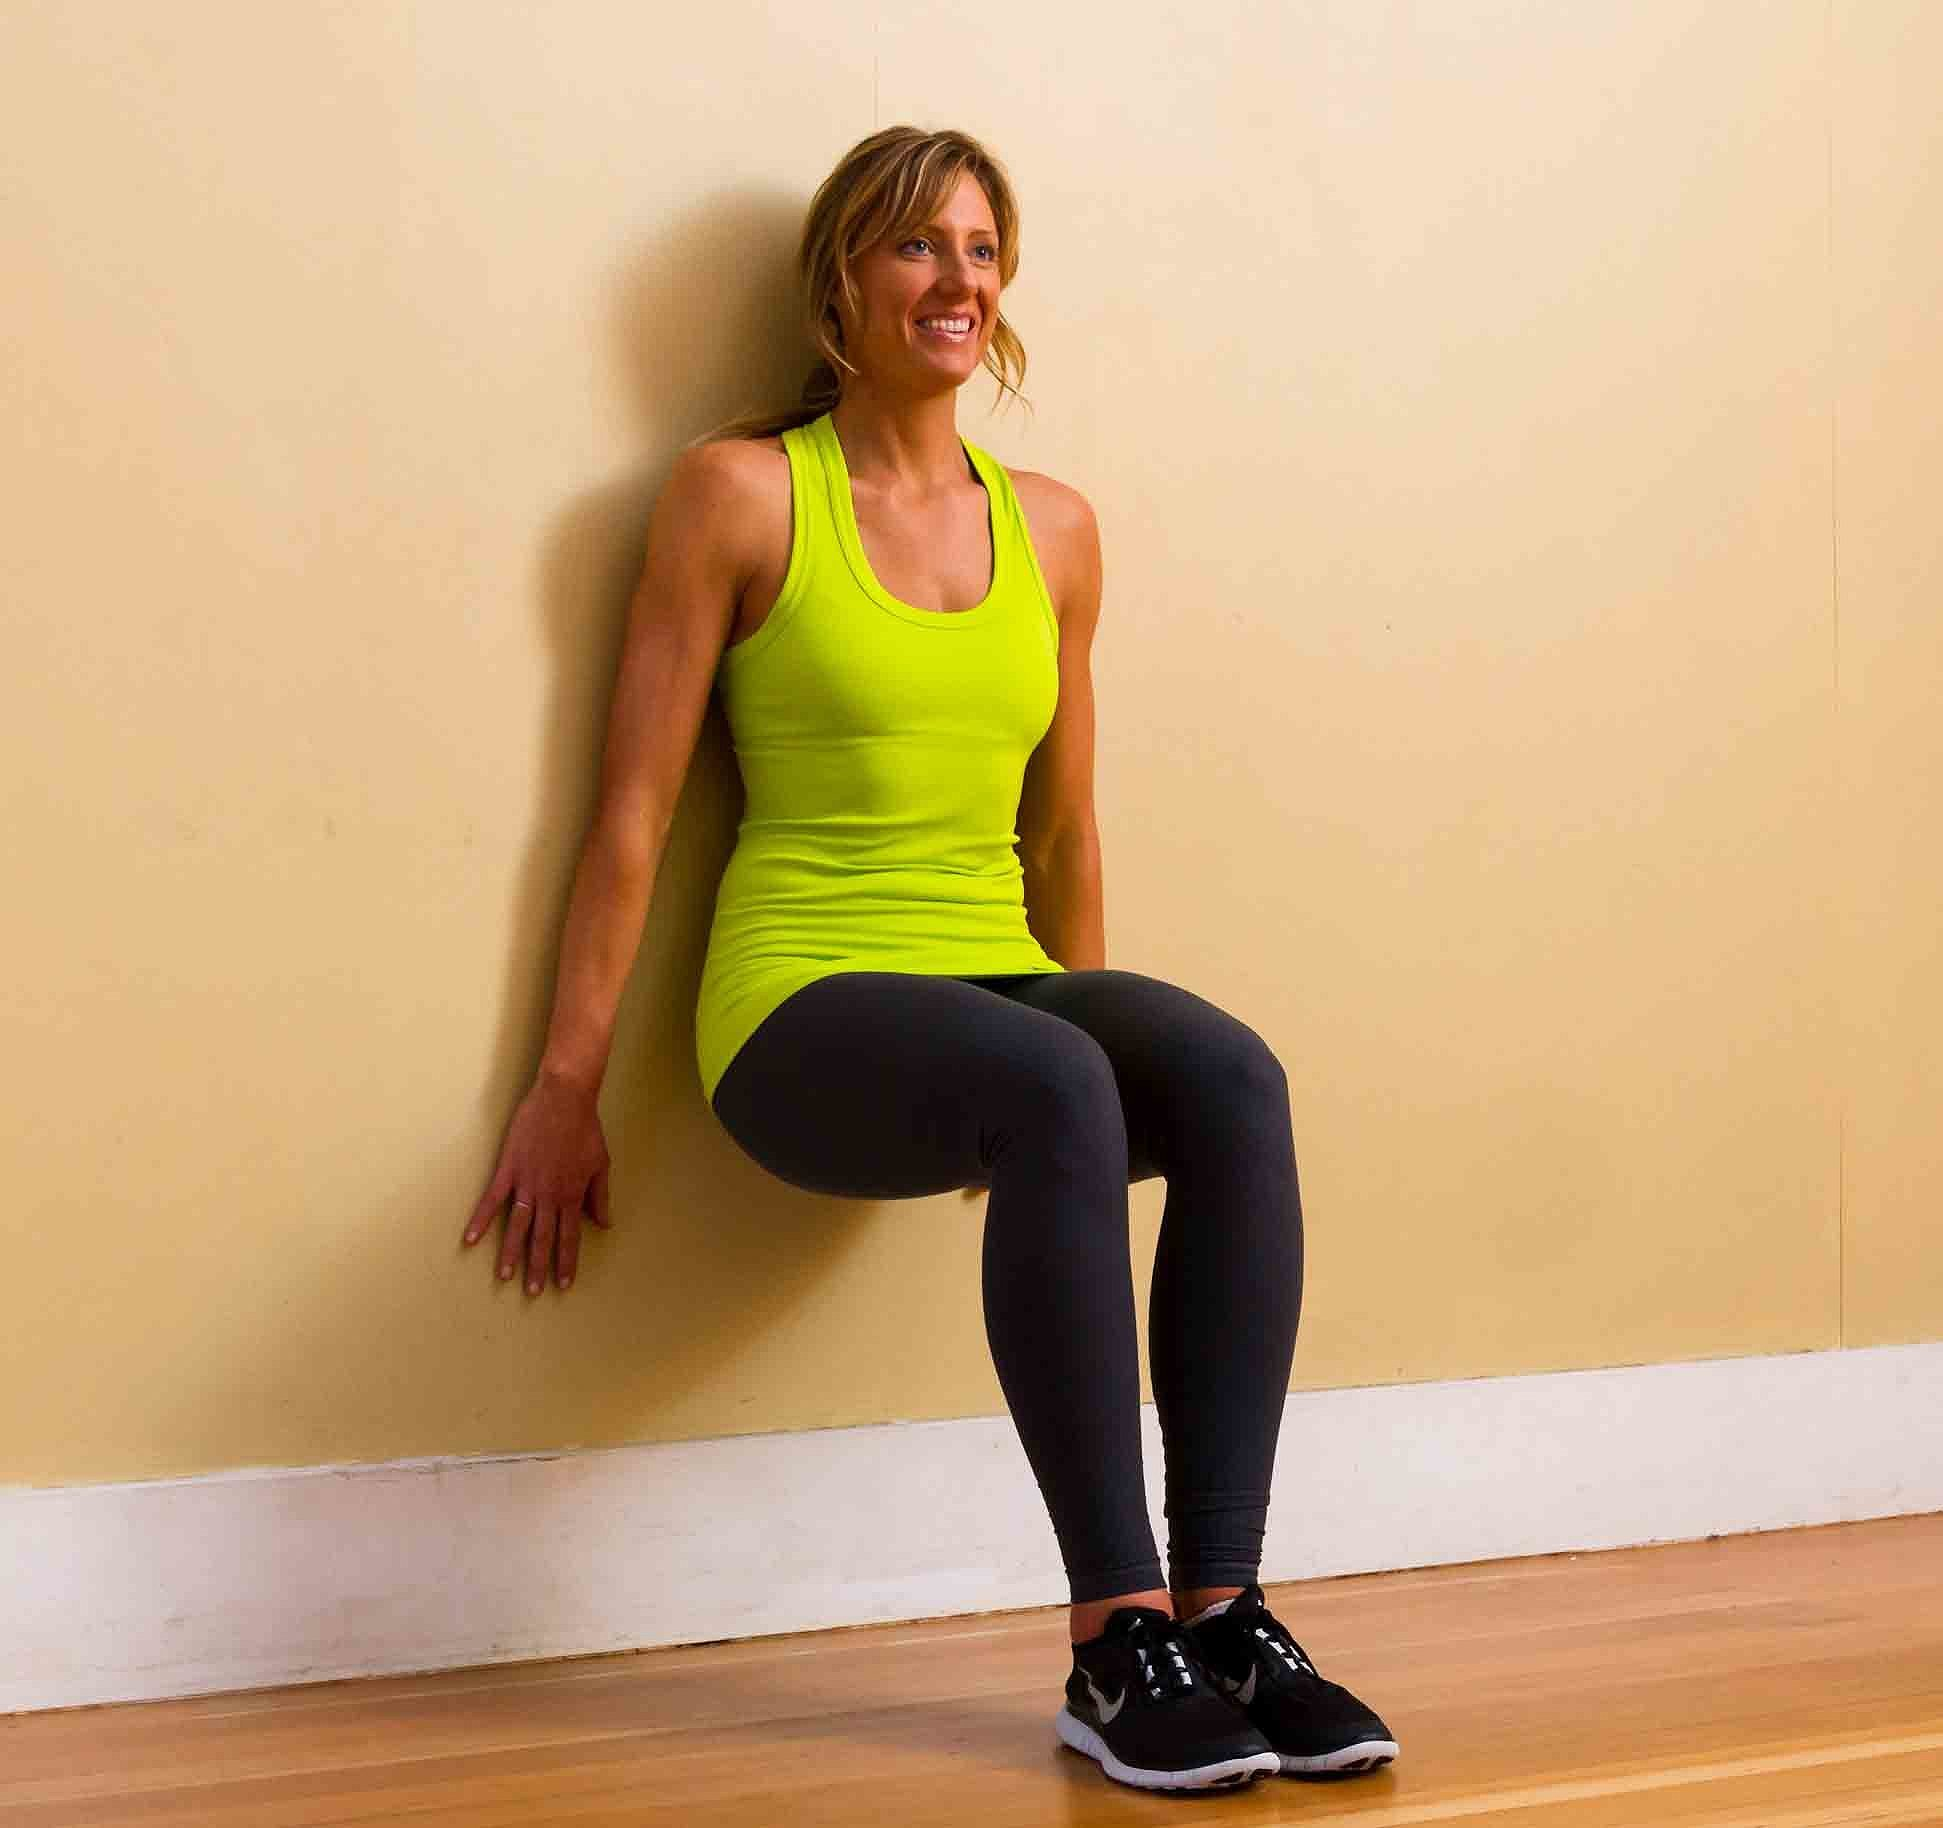 Strengthen quads and avoid runner s knee with wall squats